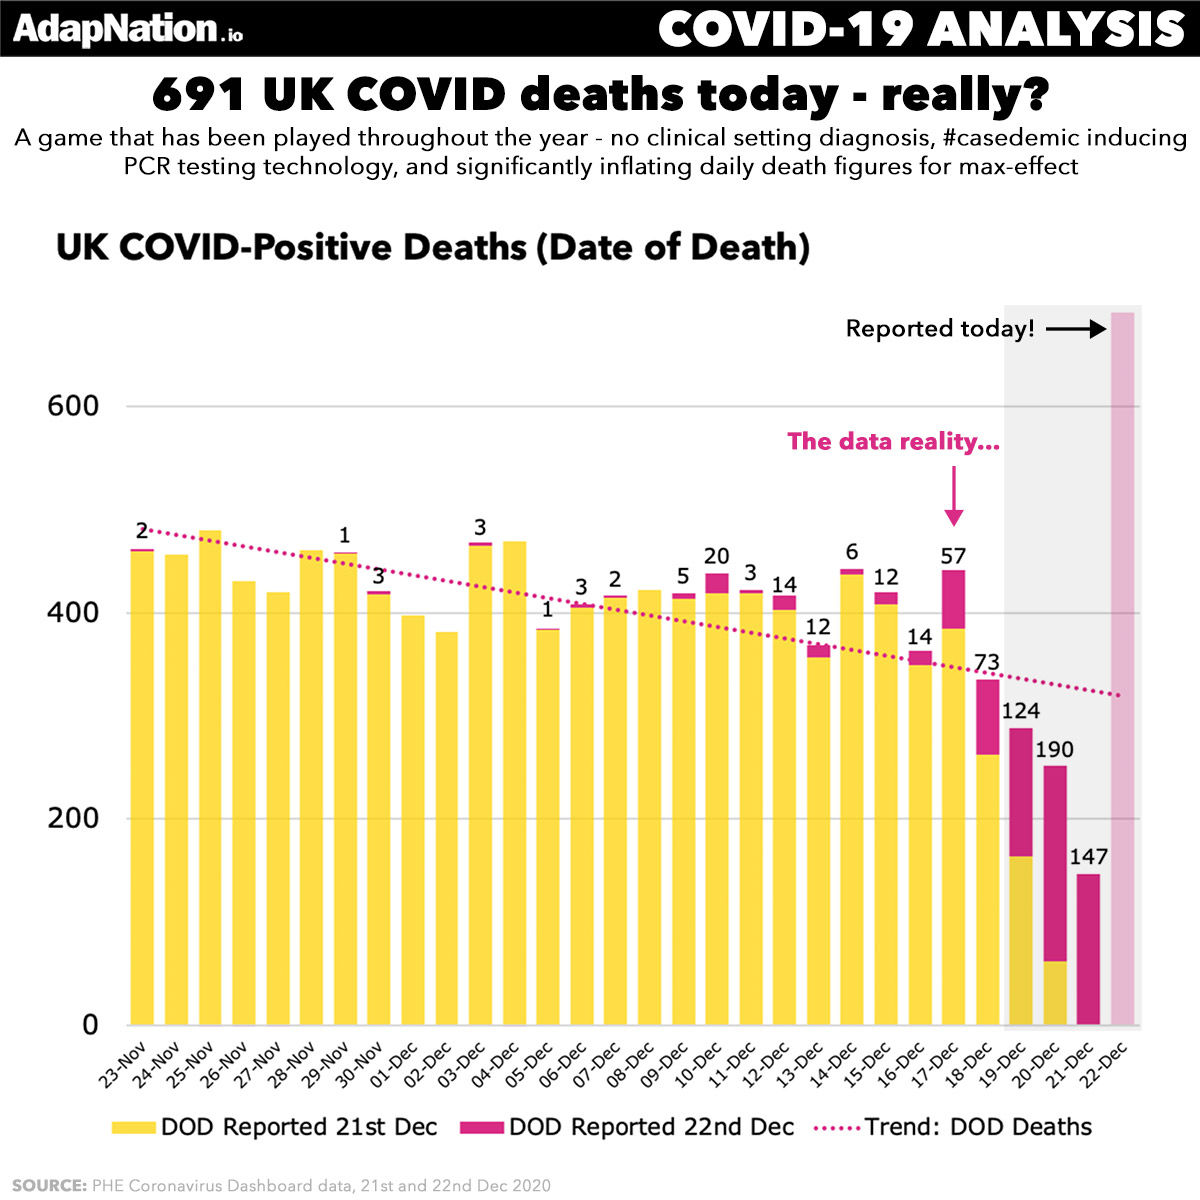 COVID deaths reported across multiple days